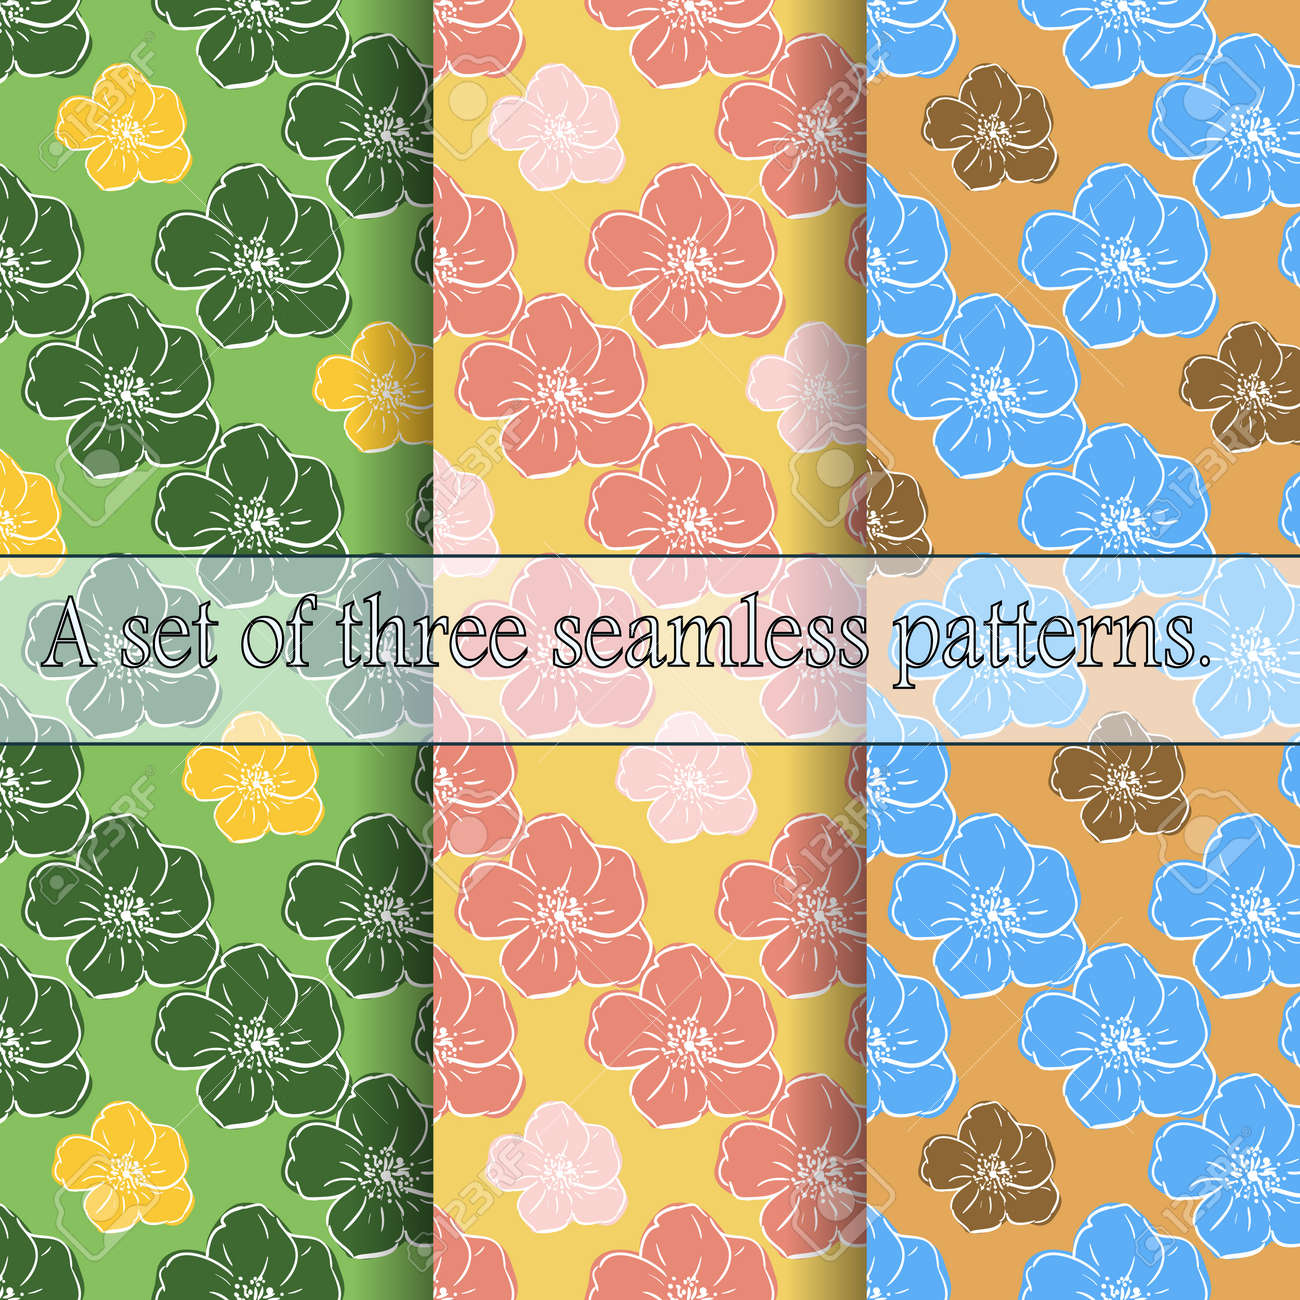 Set of three seamless floral patterns. Large bright hand-drawn flowers, light contour, careless lines. Great for decorating fabrics, textiles, gift wrapping, printed matter, interiors, advertising. - 166057317